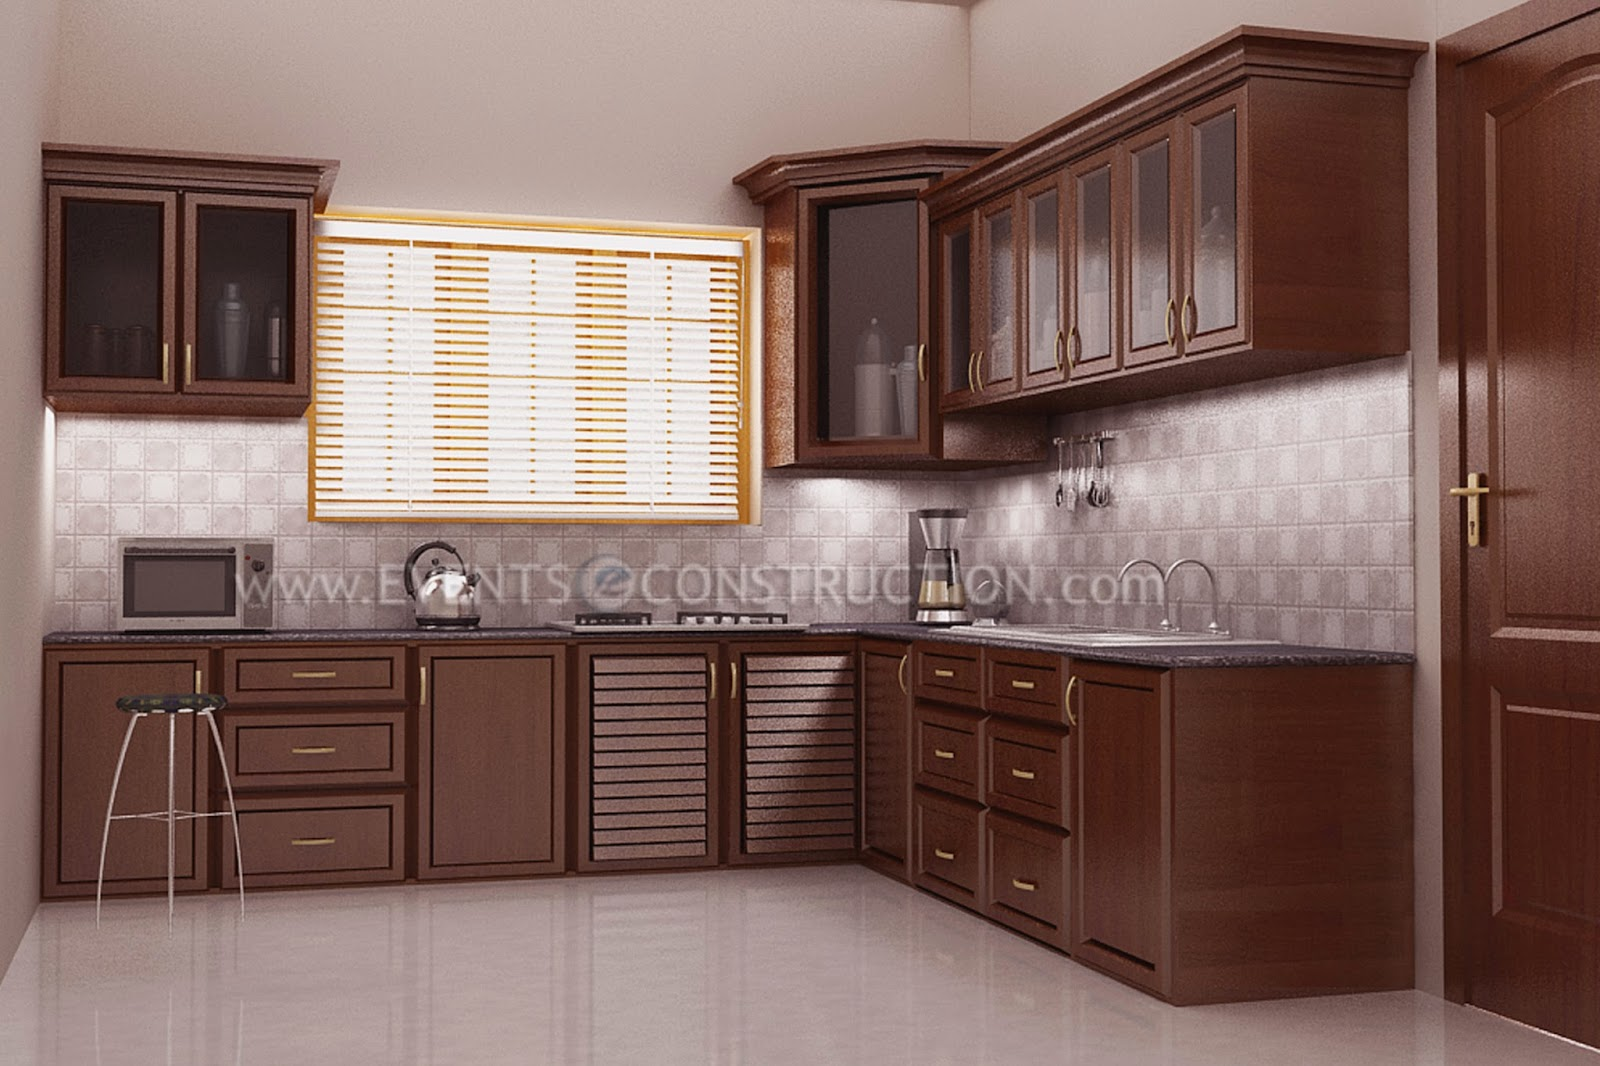 Evens construction pvt ltd kitchen design with wooden for House kitchen model